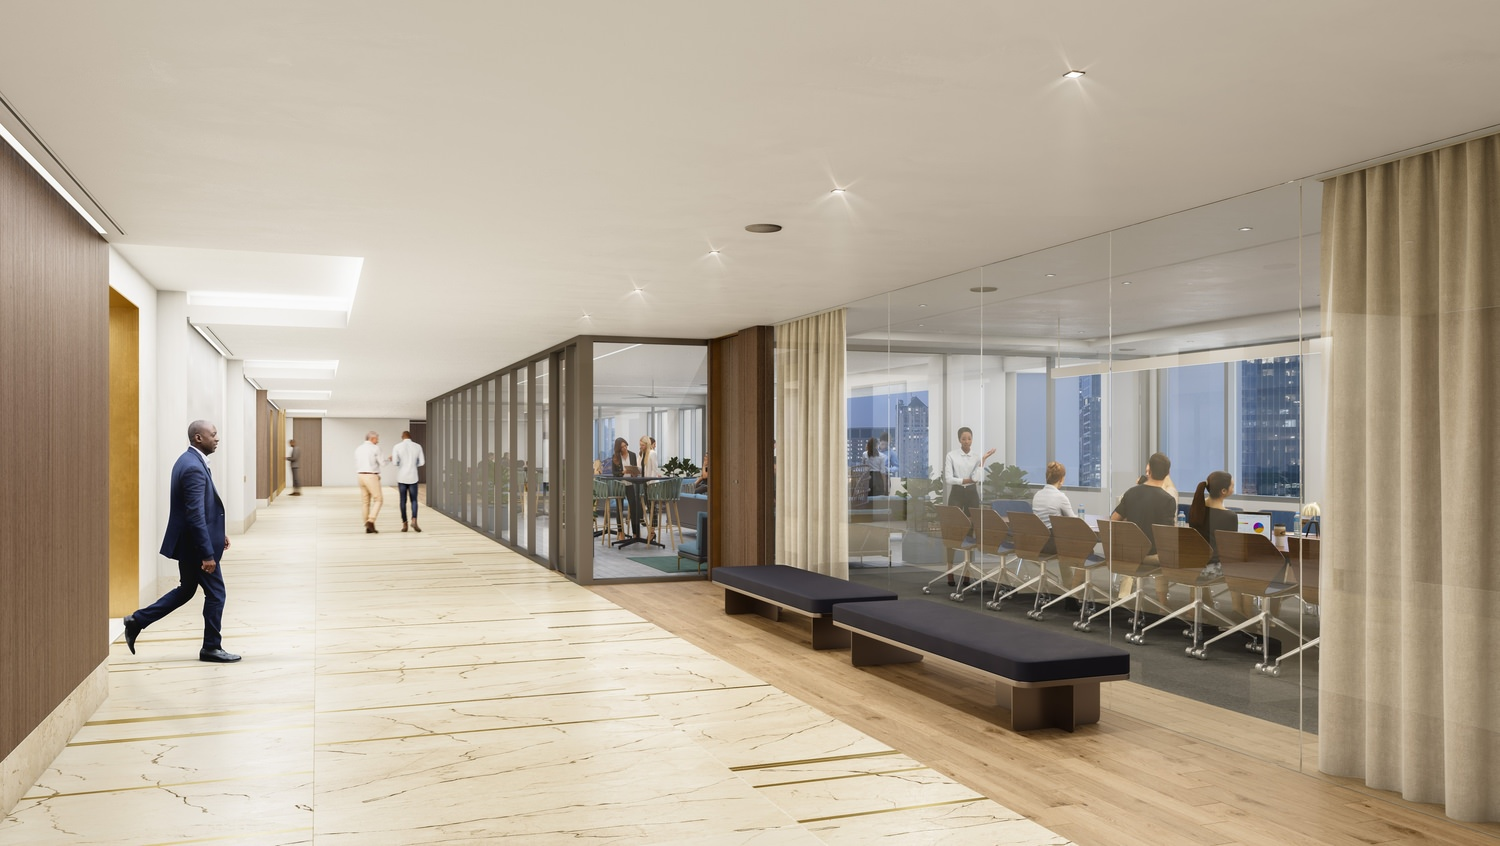 A view of an office building that has a hallway with glass doors that you can see into a board room from.